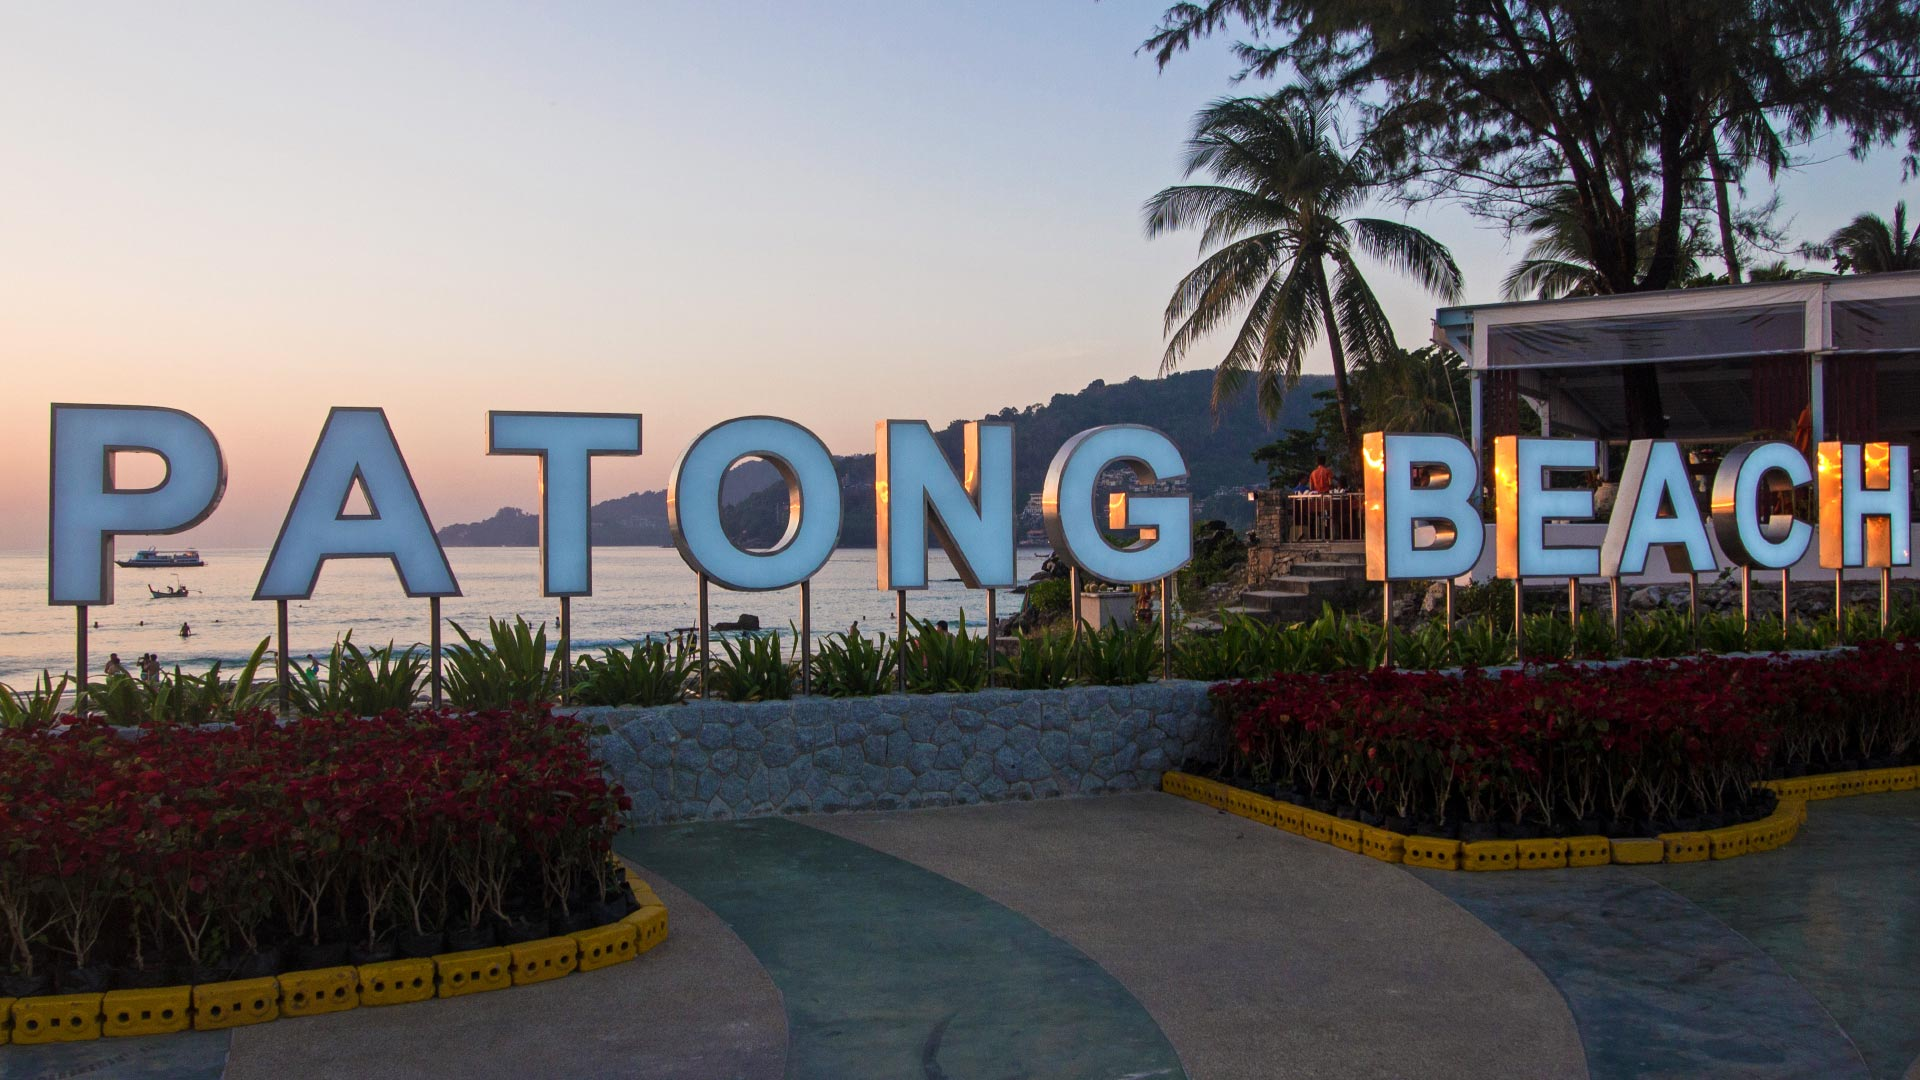 Patong Beach sign at the beach